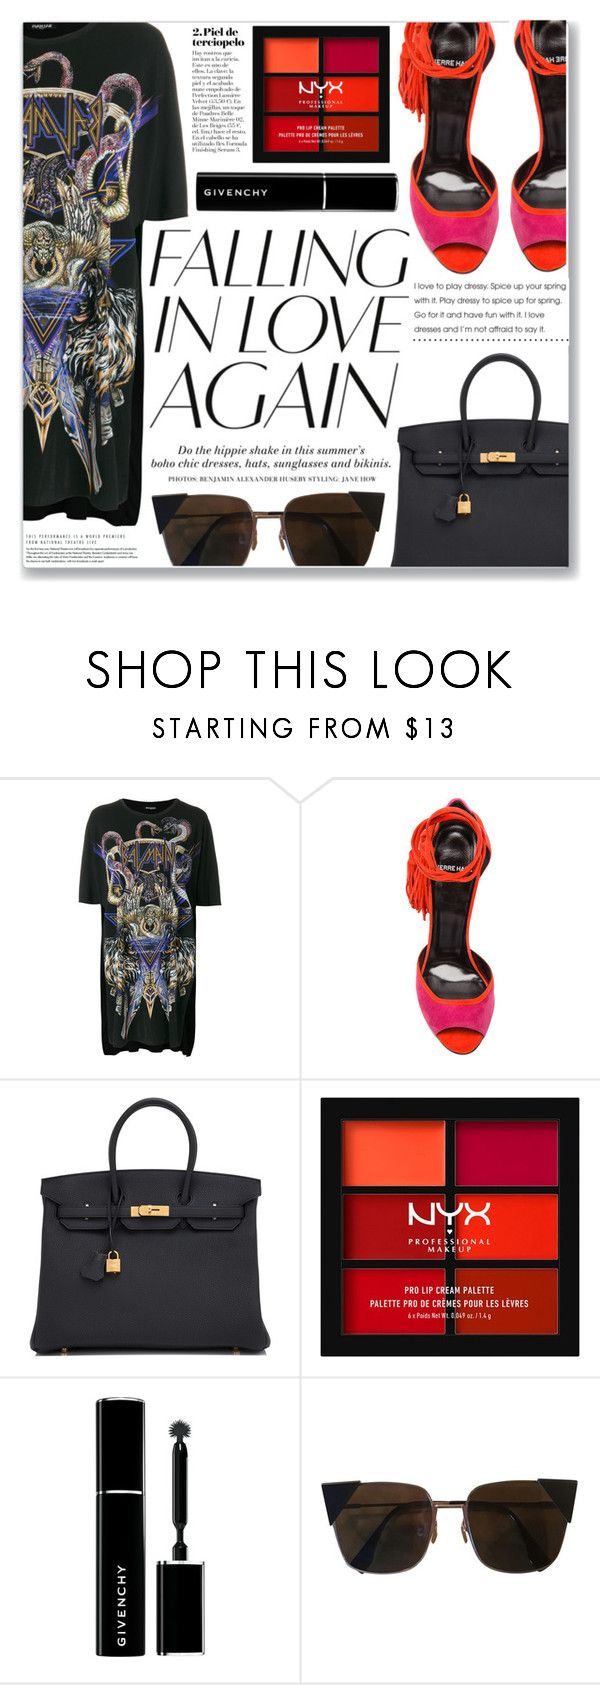 """""""FALLIN IN LOVE"""" by brenndha ❤ liked on Polyvore featuring Balmain, Pierre Hardy, Hermès, H&M, NYX, Givenchy and Fendi"""